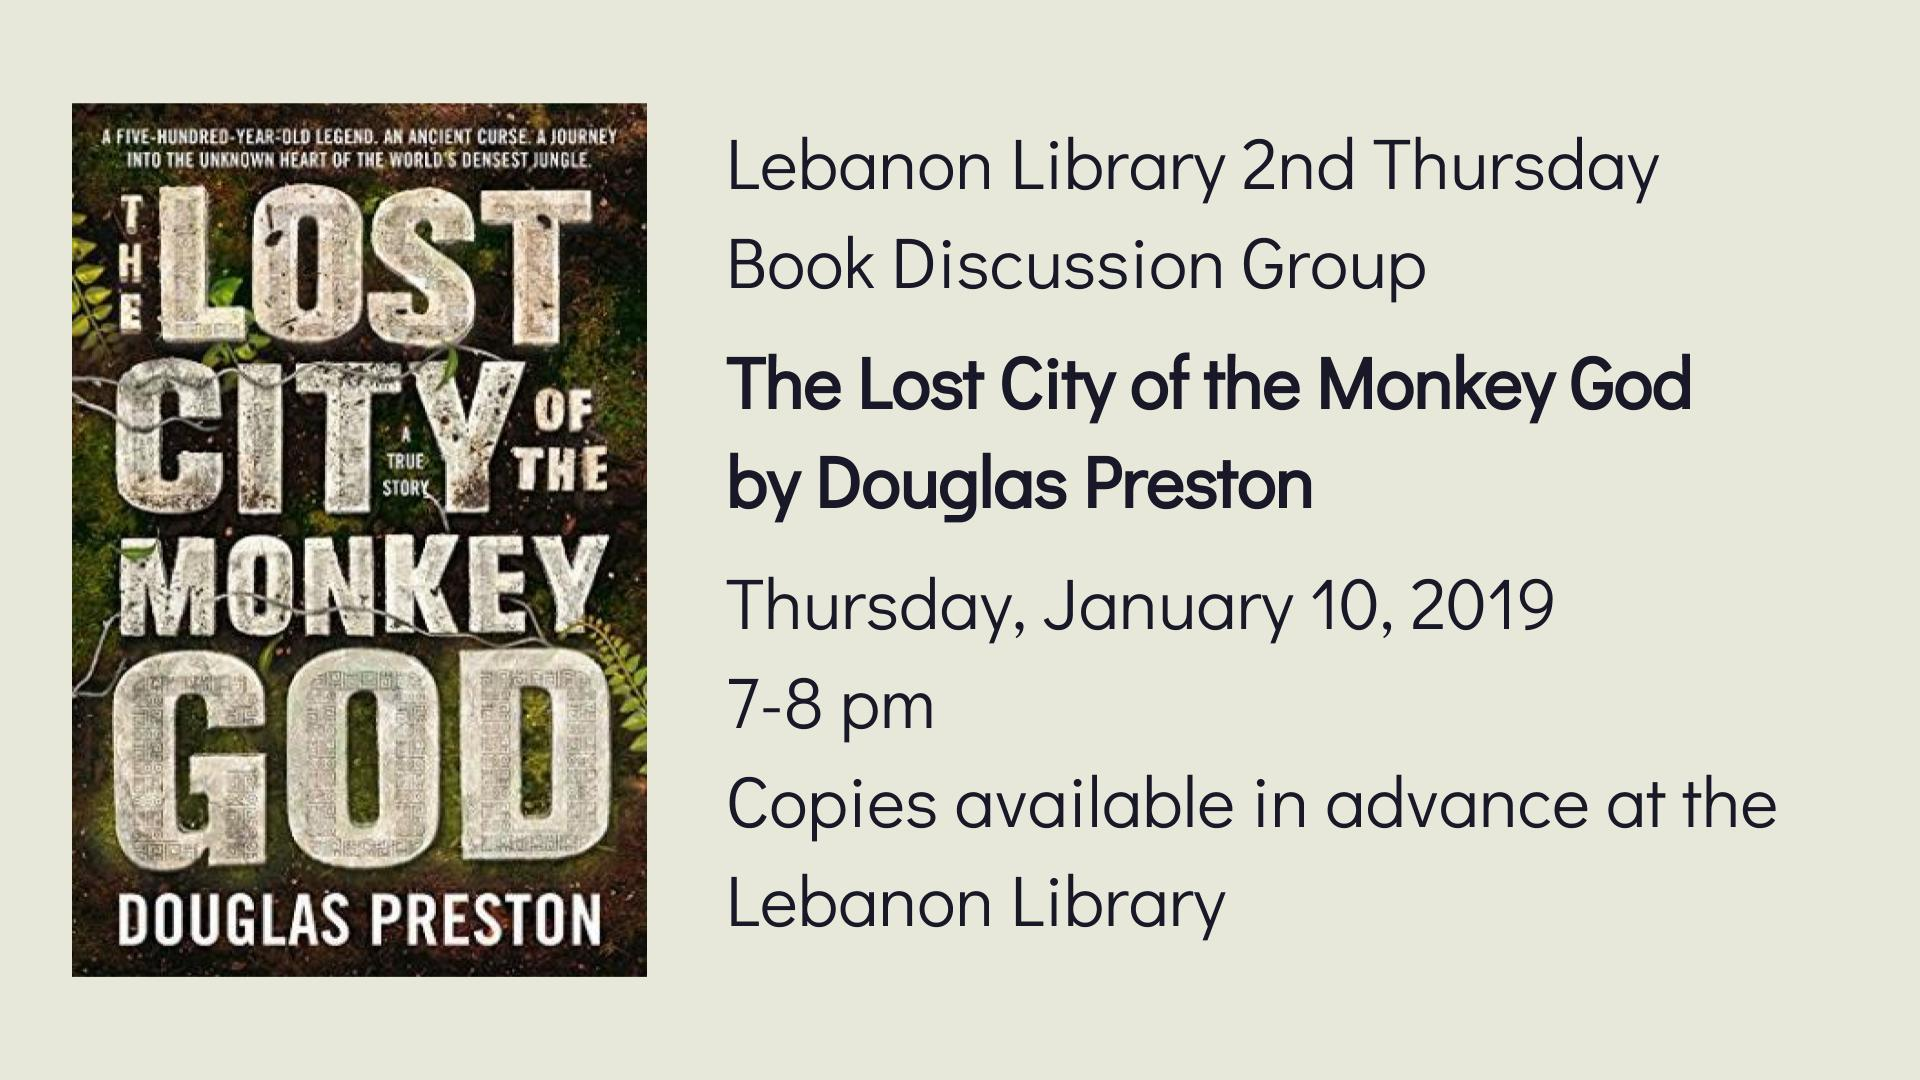 Lebanon Library 2nd Thursday  Book Discussion Group  The Lost City of the Monkey God by Douglas Preston  Thursday, January 10, 2019  7-8 pm   Copies available in advance at the Lebanon Library